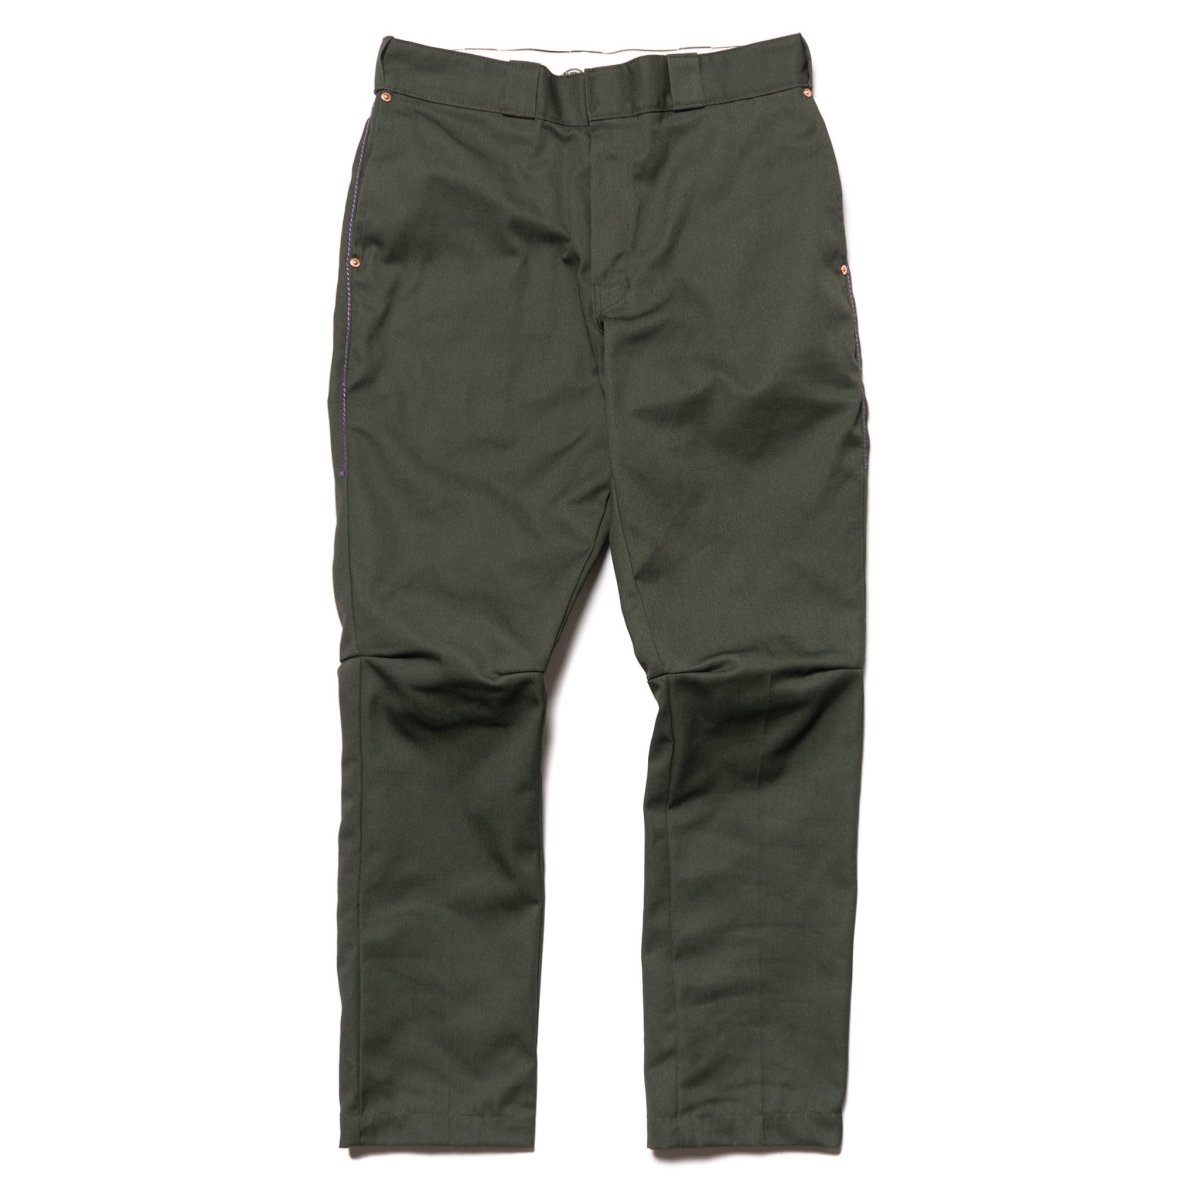 HAVEN-Rebuild-by-Needles-Dickies-874-Dimension-Slim-Pant-OLIVE-S_A_-1_2048x2048